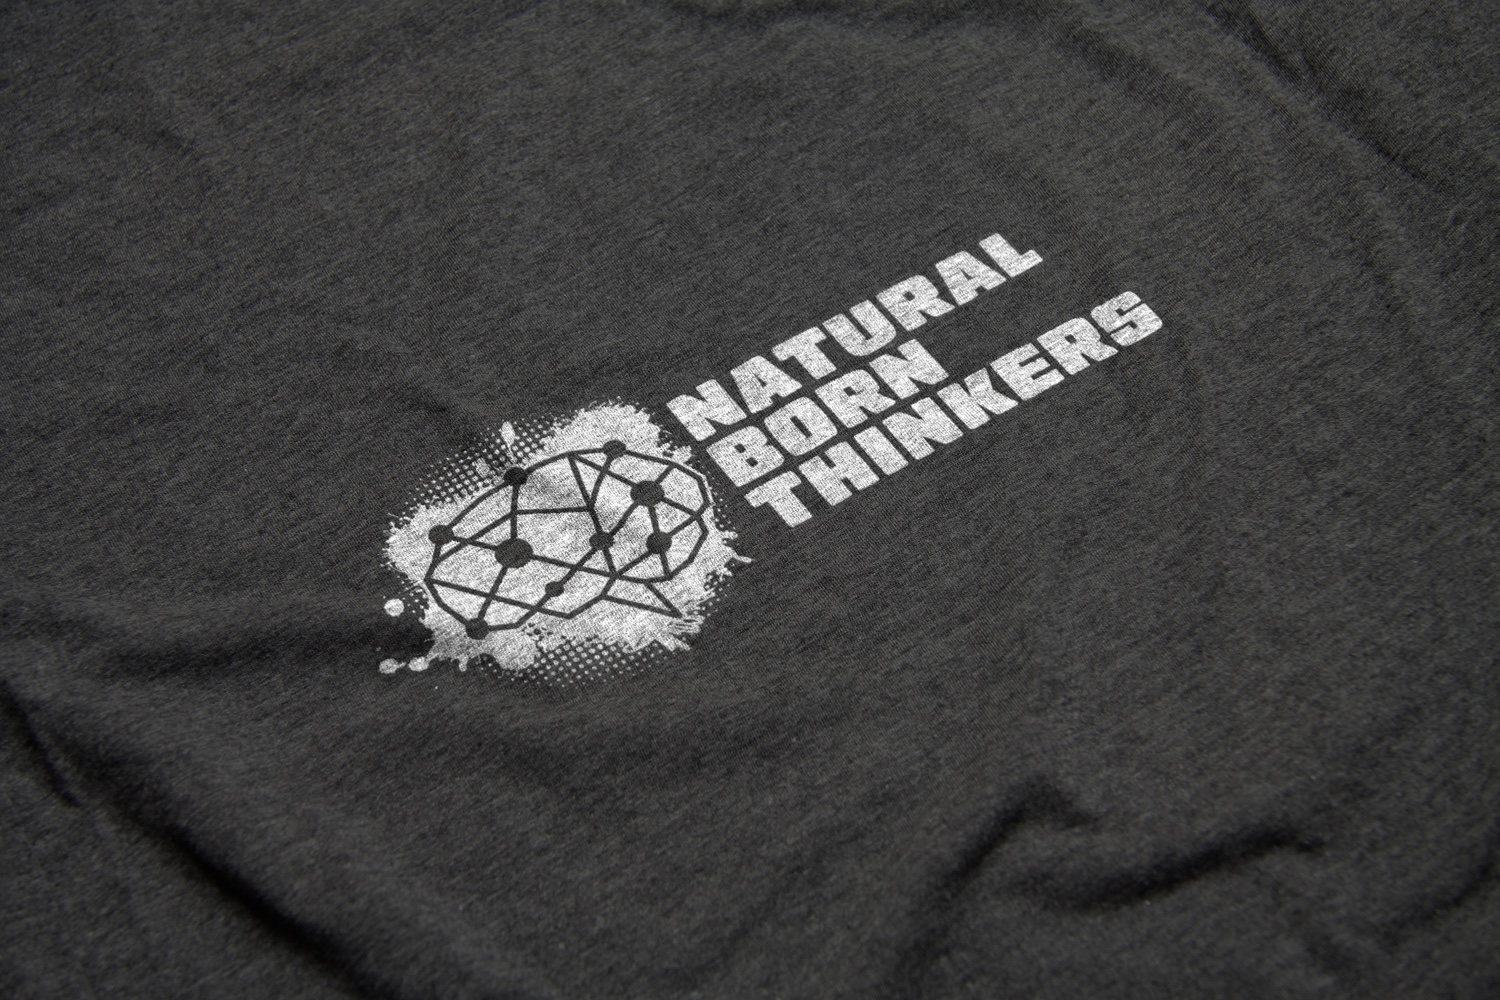 Natural Born Thinkers Logo Design by Carl Gamble on a t-shirt